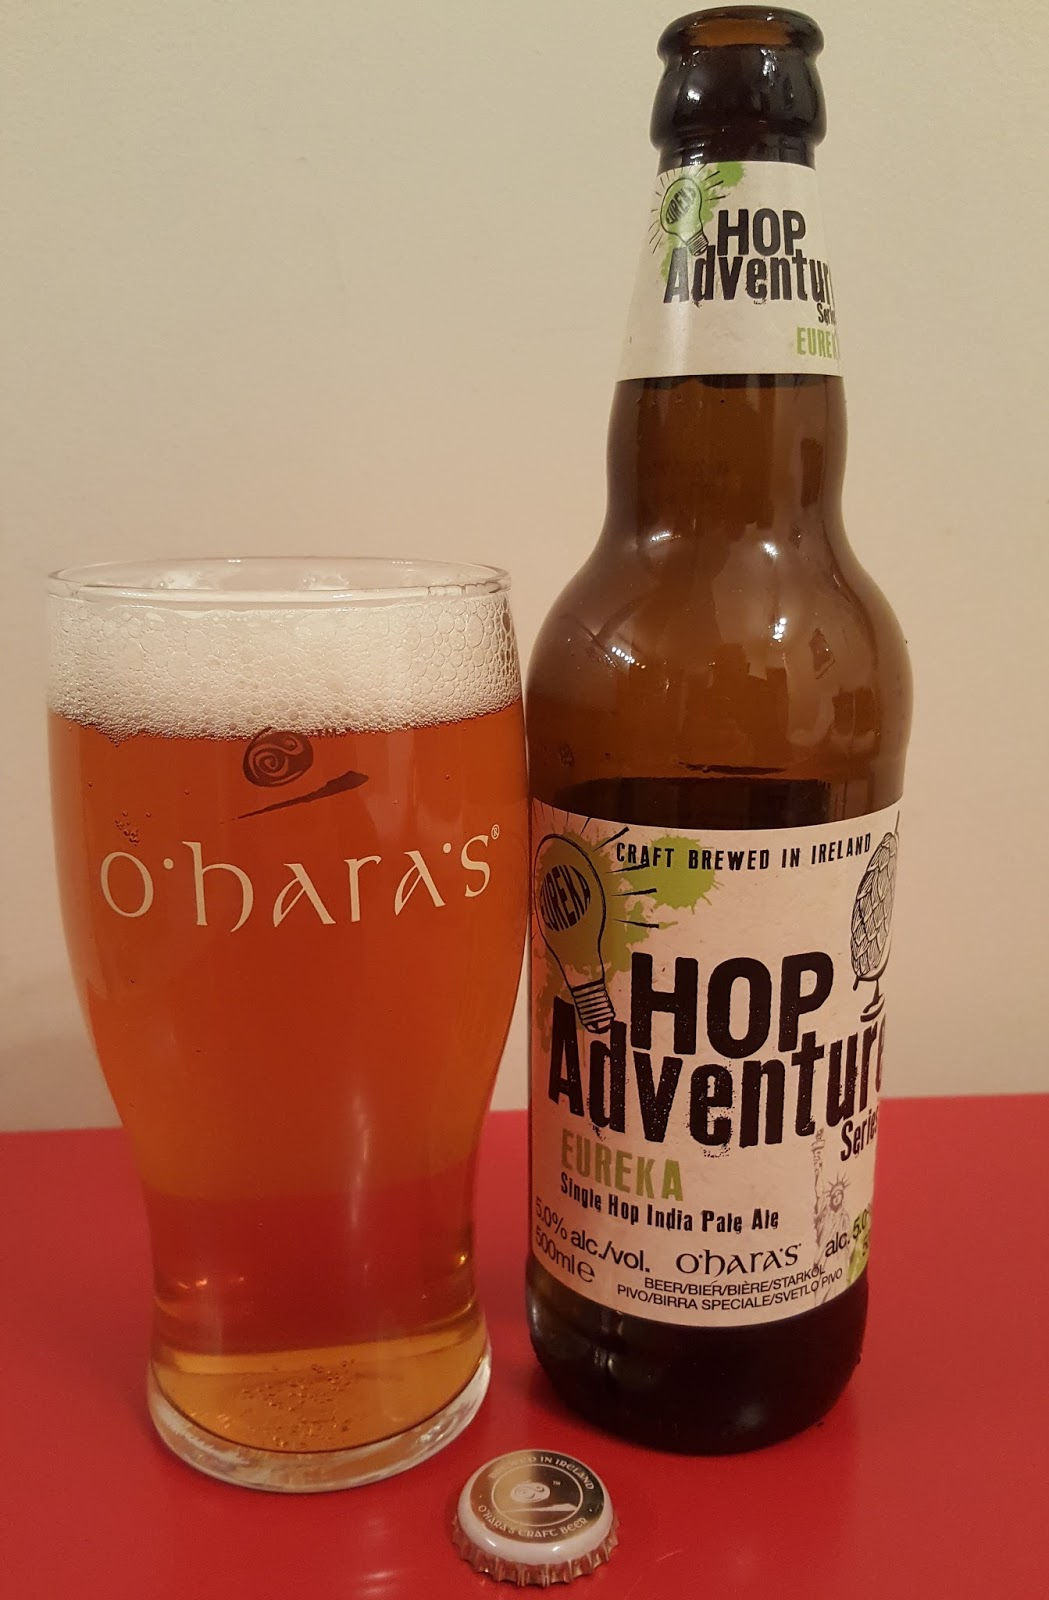 Beer 5 in the O'Hara's Hop Adventure Series arrived and the brewery kindly  sent me a bottle. Hop Adventure Eureka brings us to the US for the first  time.